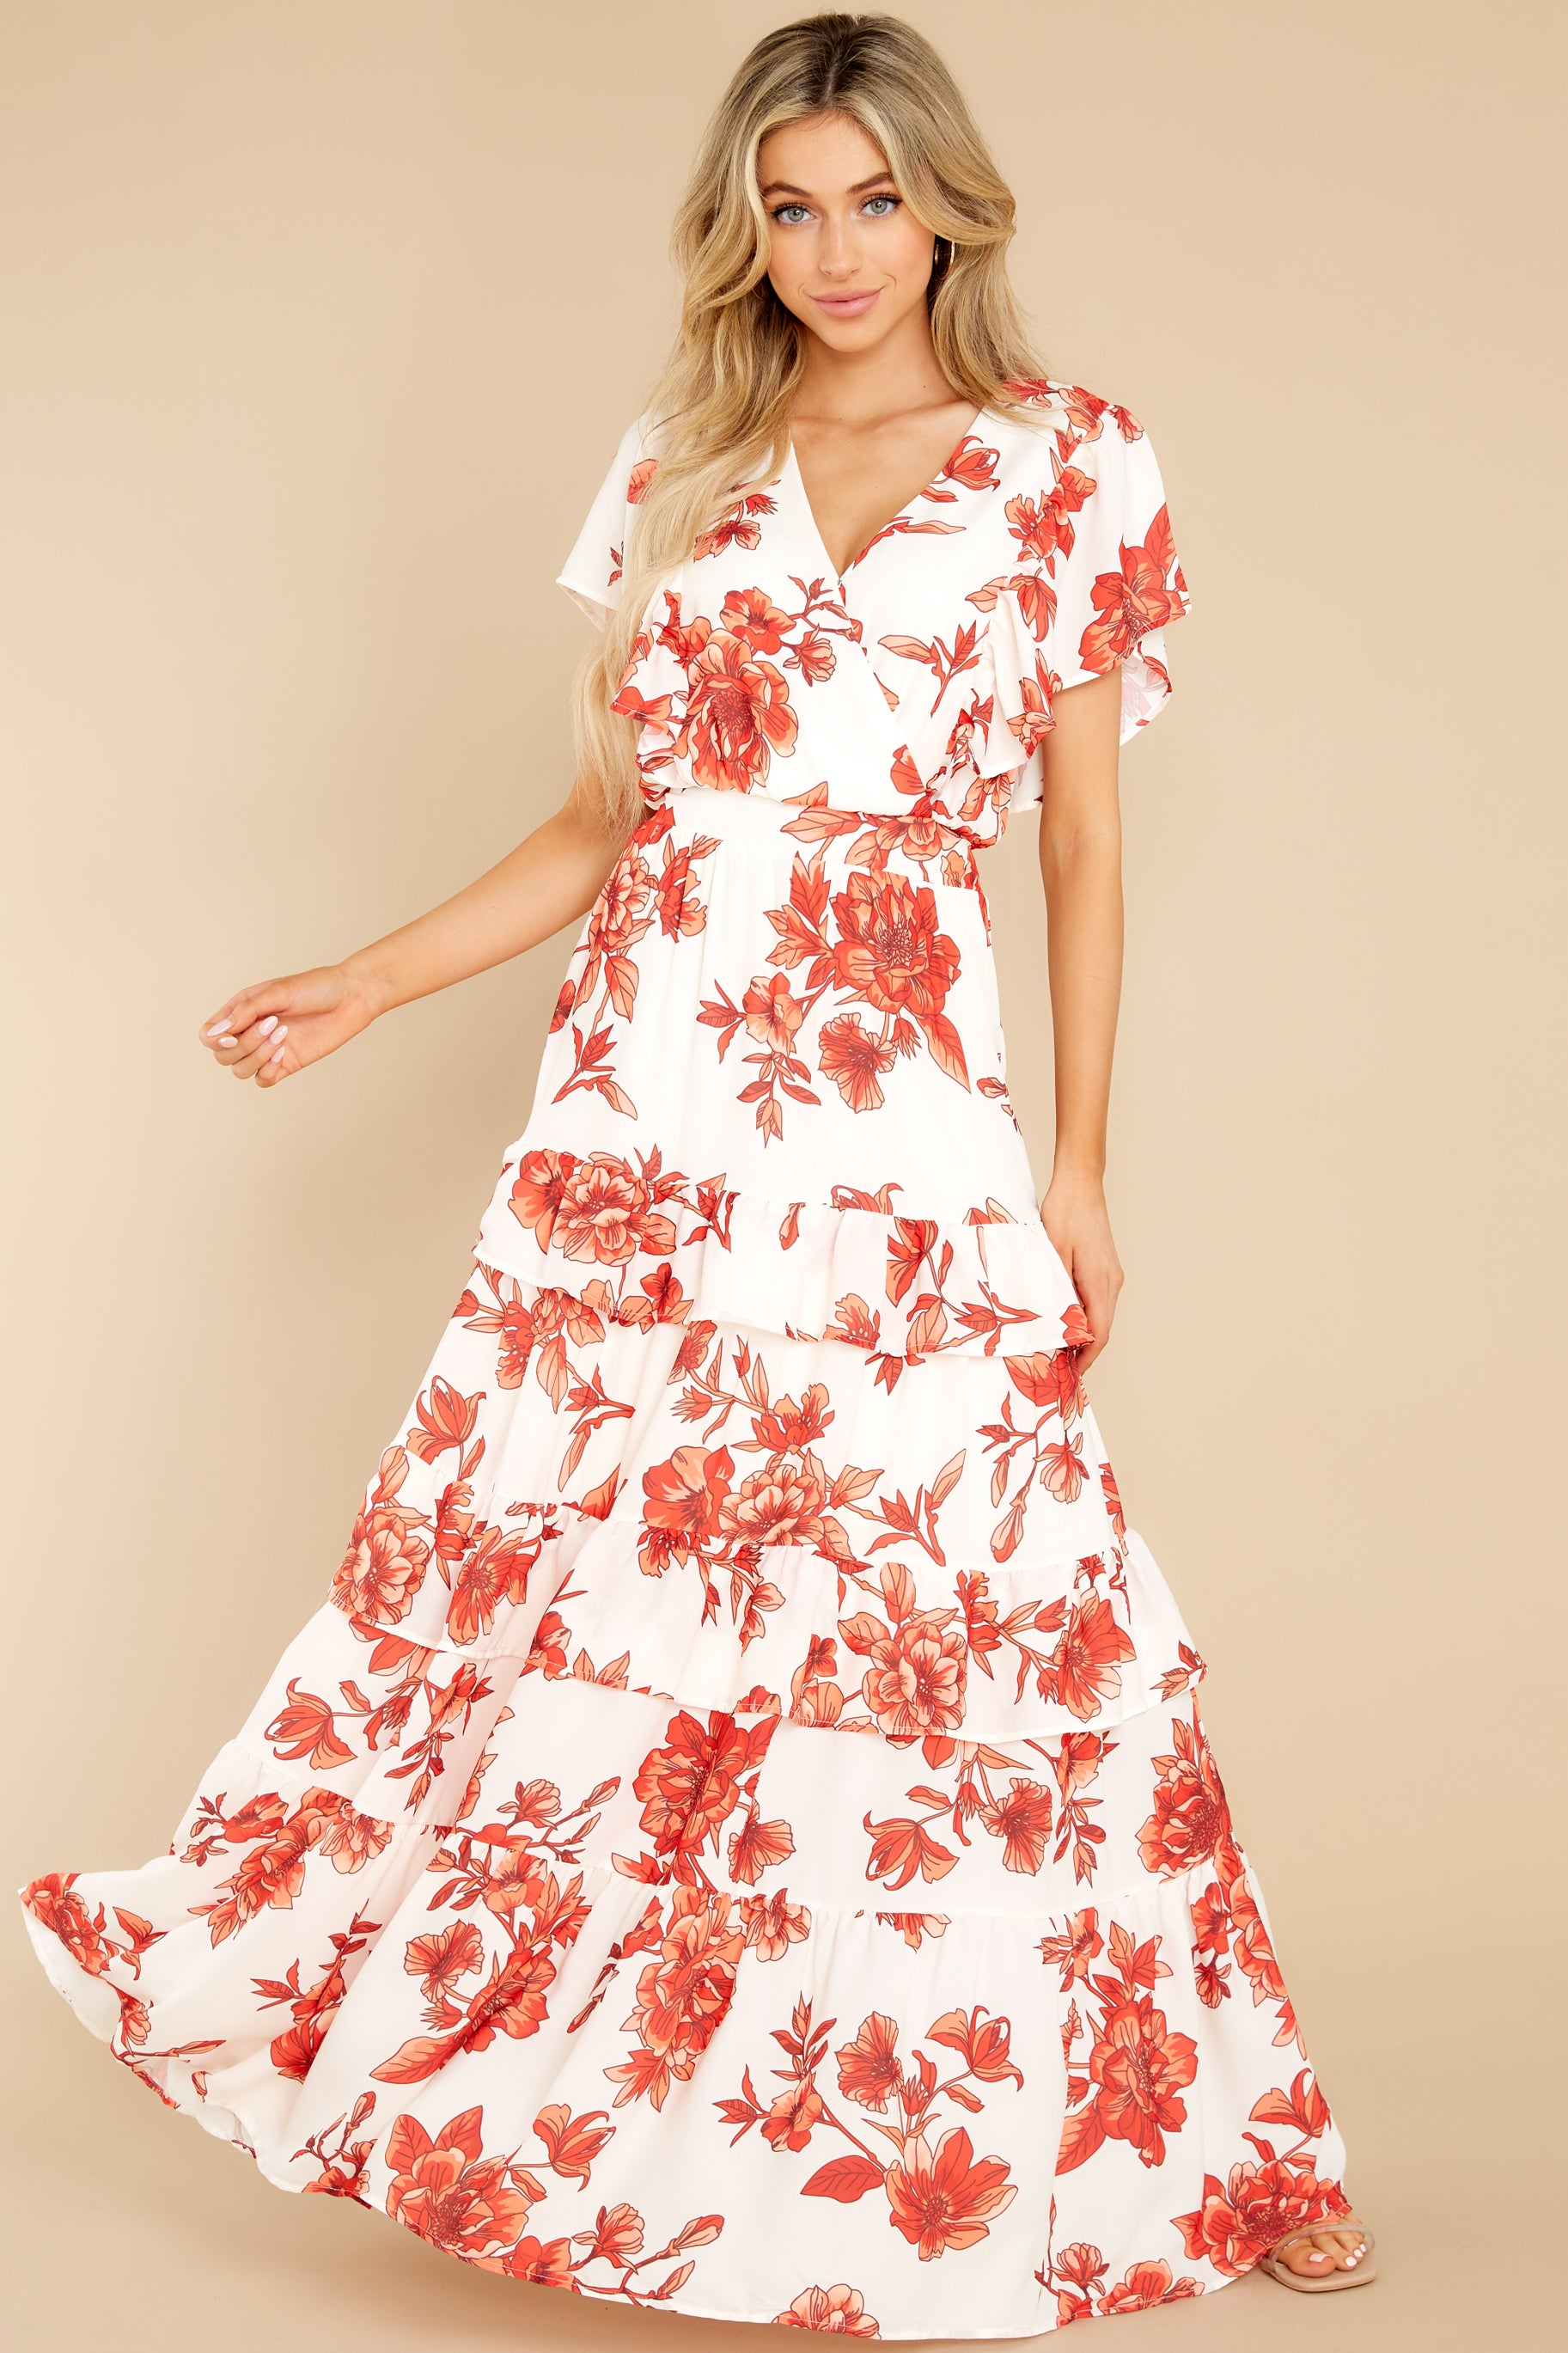 5 Radiating Confidence Orange And Ivory Floral Print Maxi Dress at reddress.com